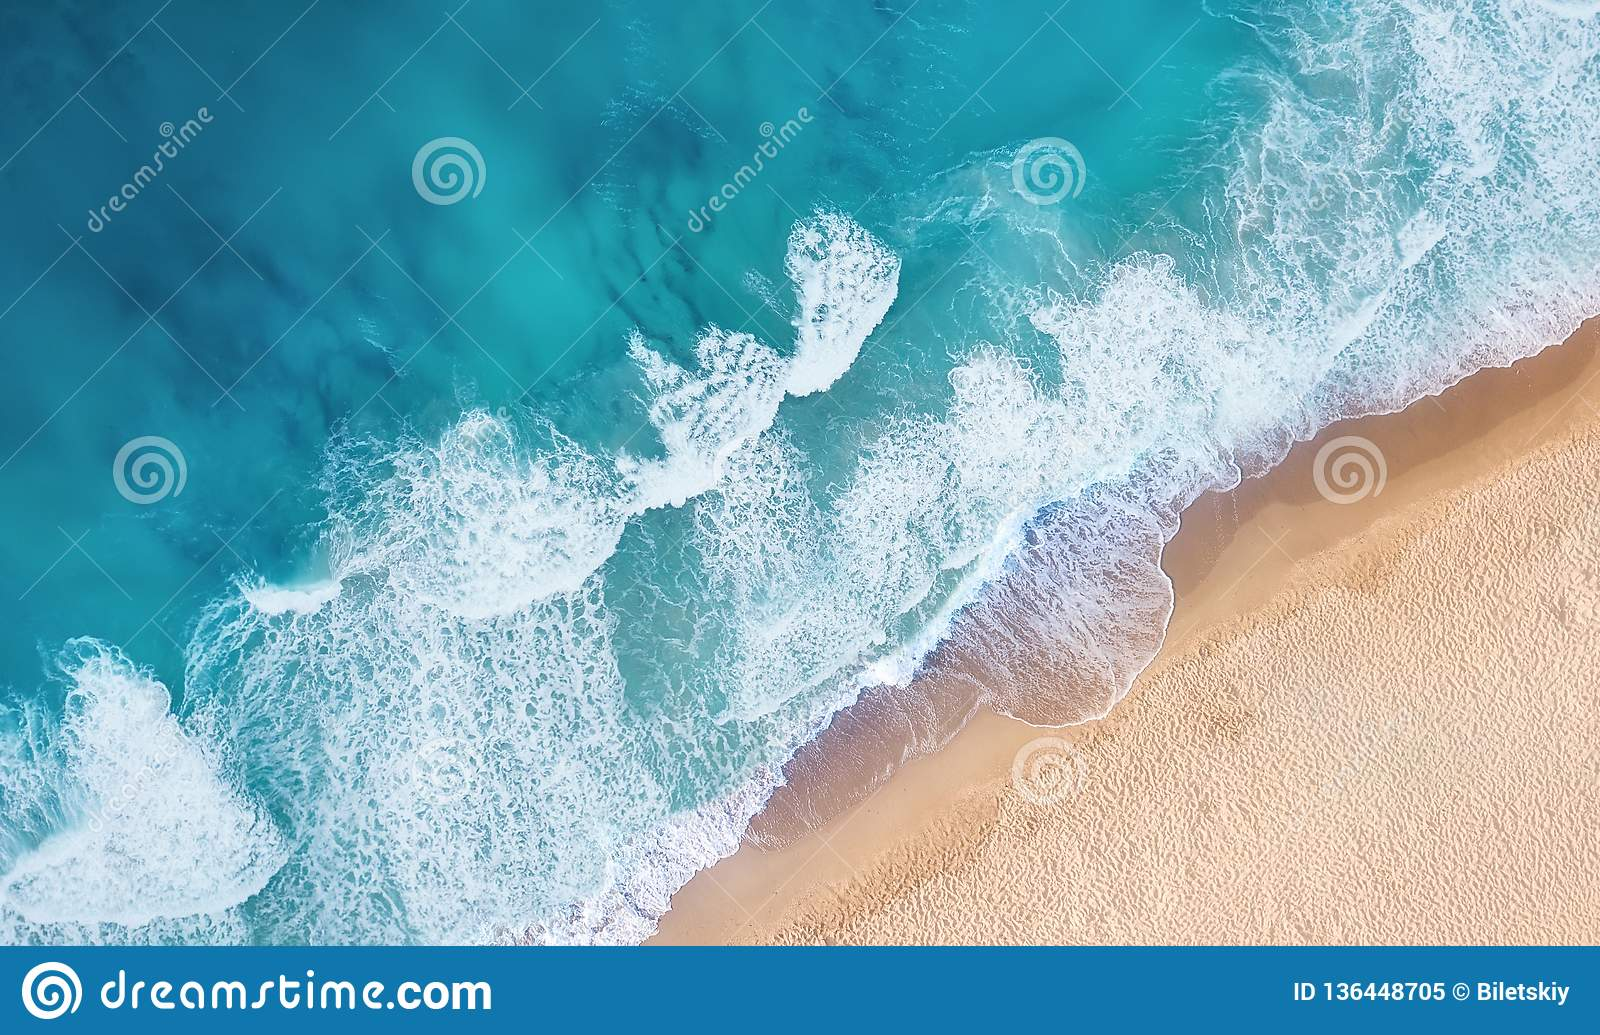 Beach and waves from top view. Turquoise water background from top view. Summer seascape from air.